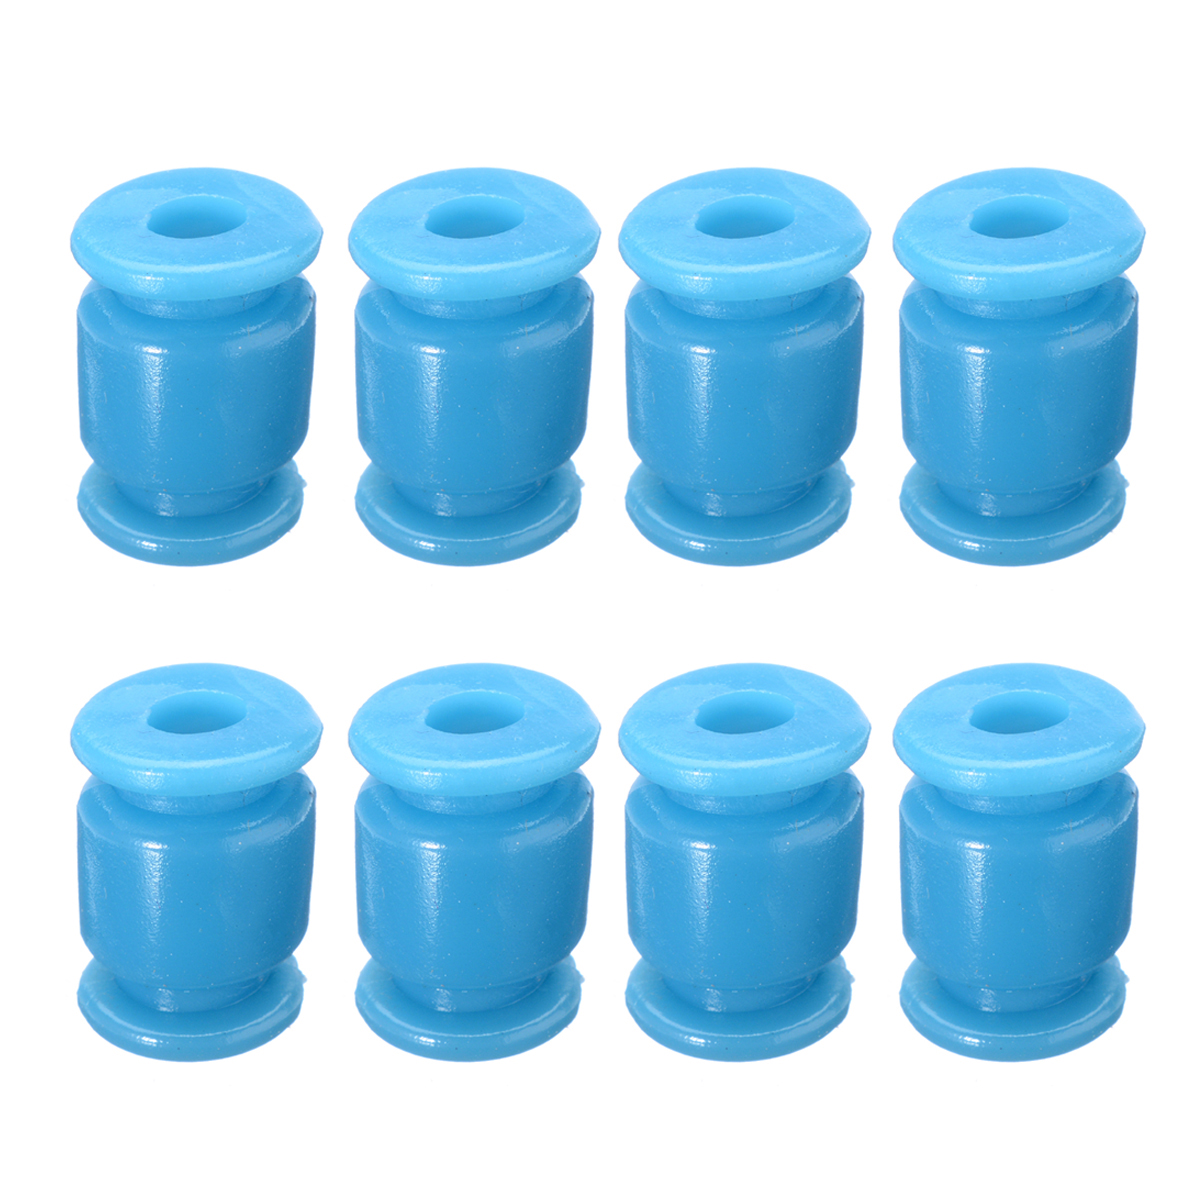 8pcs Anti-vibration Rubber Shock Absorber Ball Suspension Ball Shock Damping Ball For Flight Controller